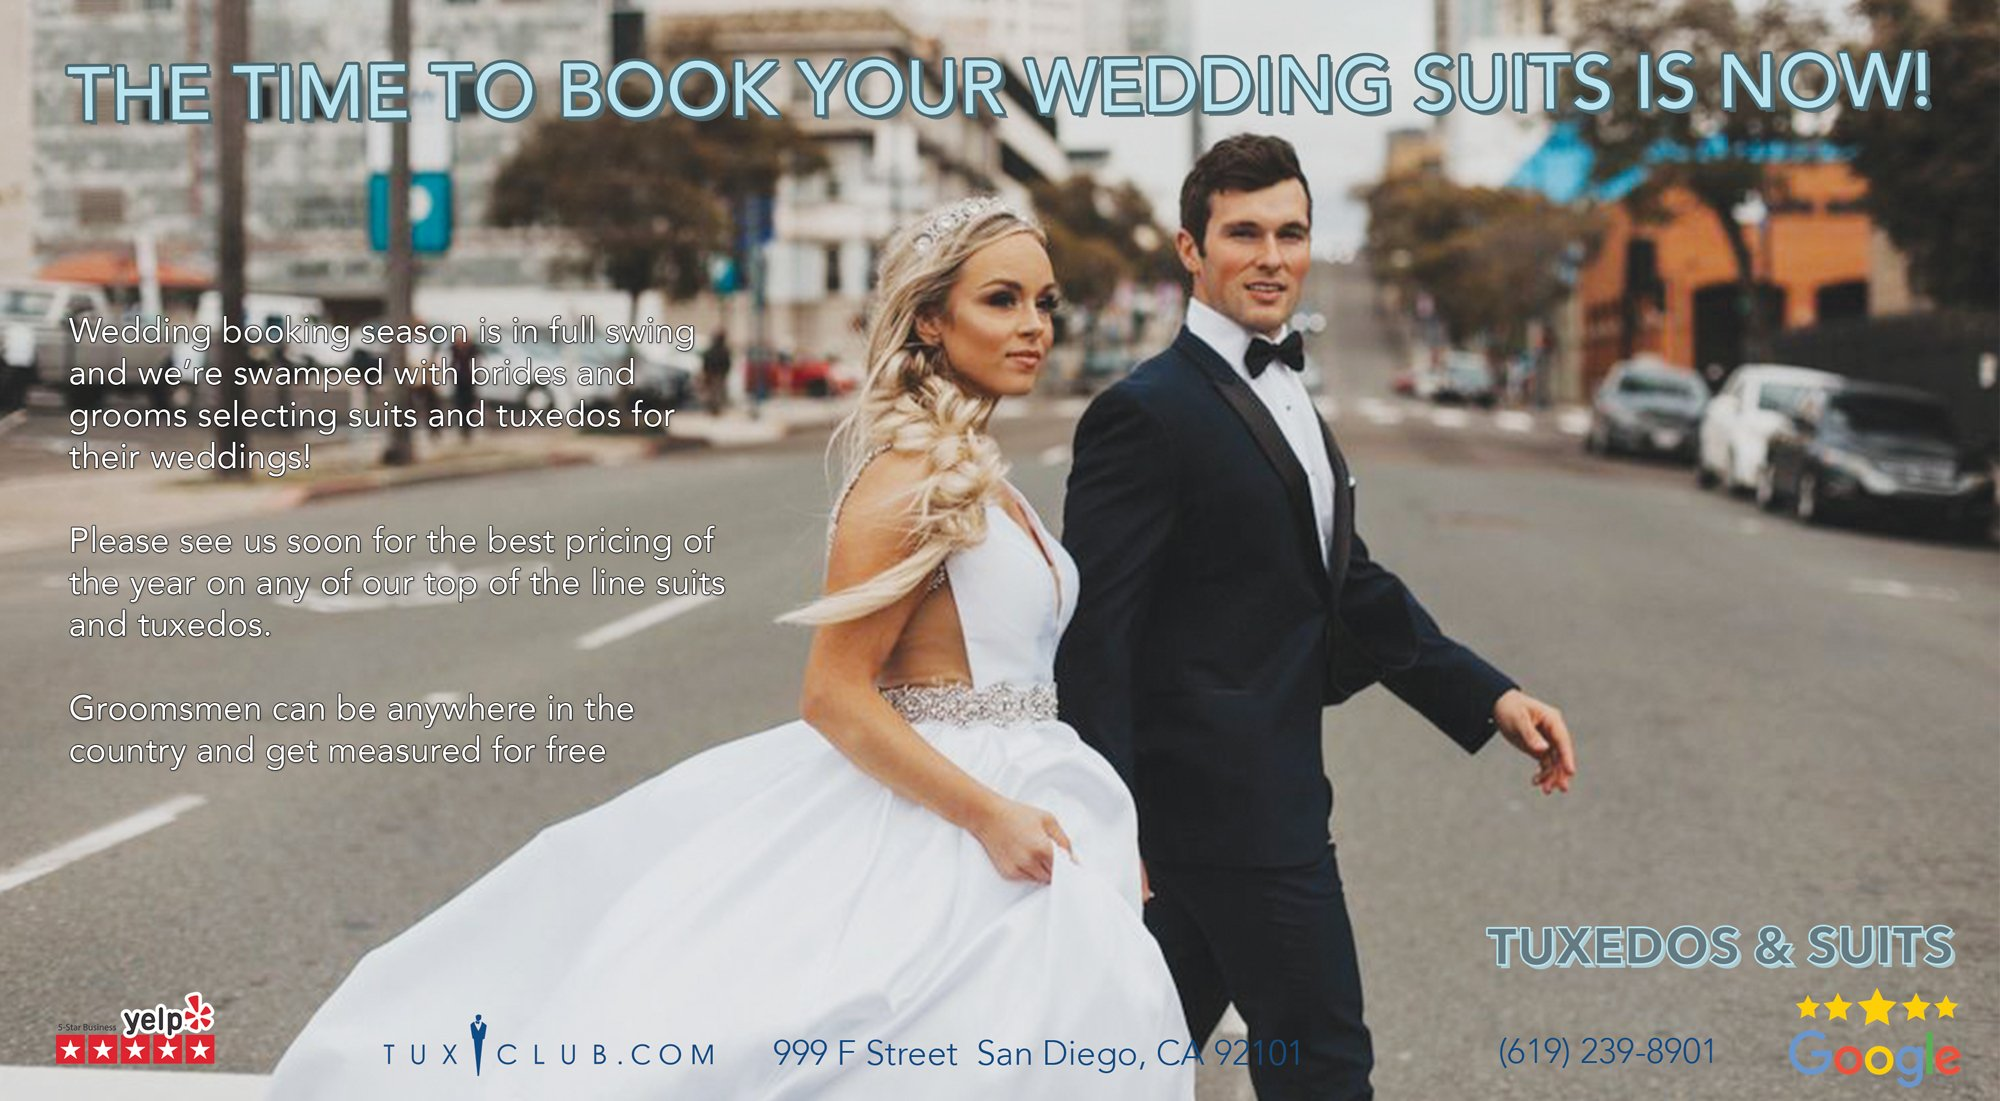 Wedding Tuxedos and Suit Booking Season